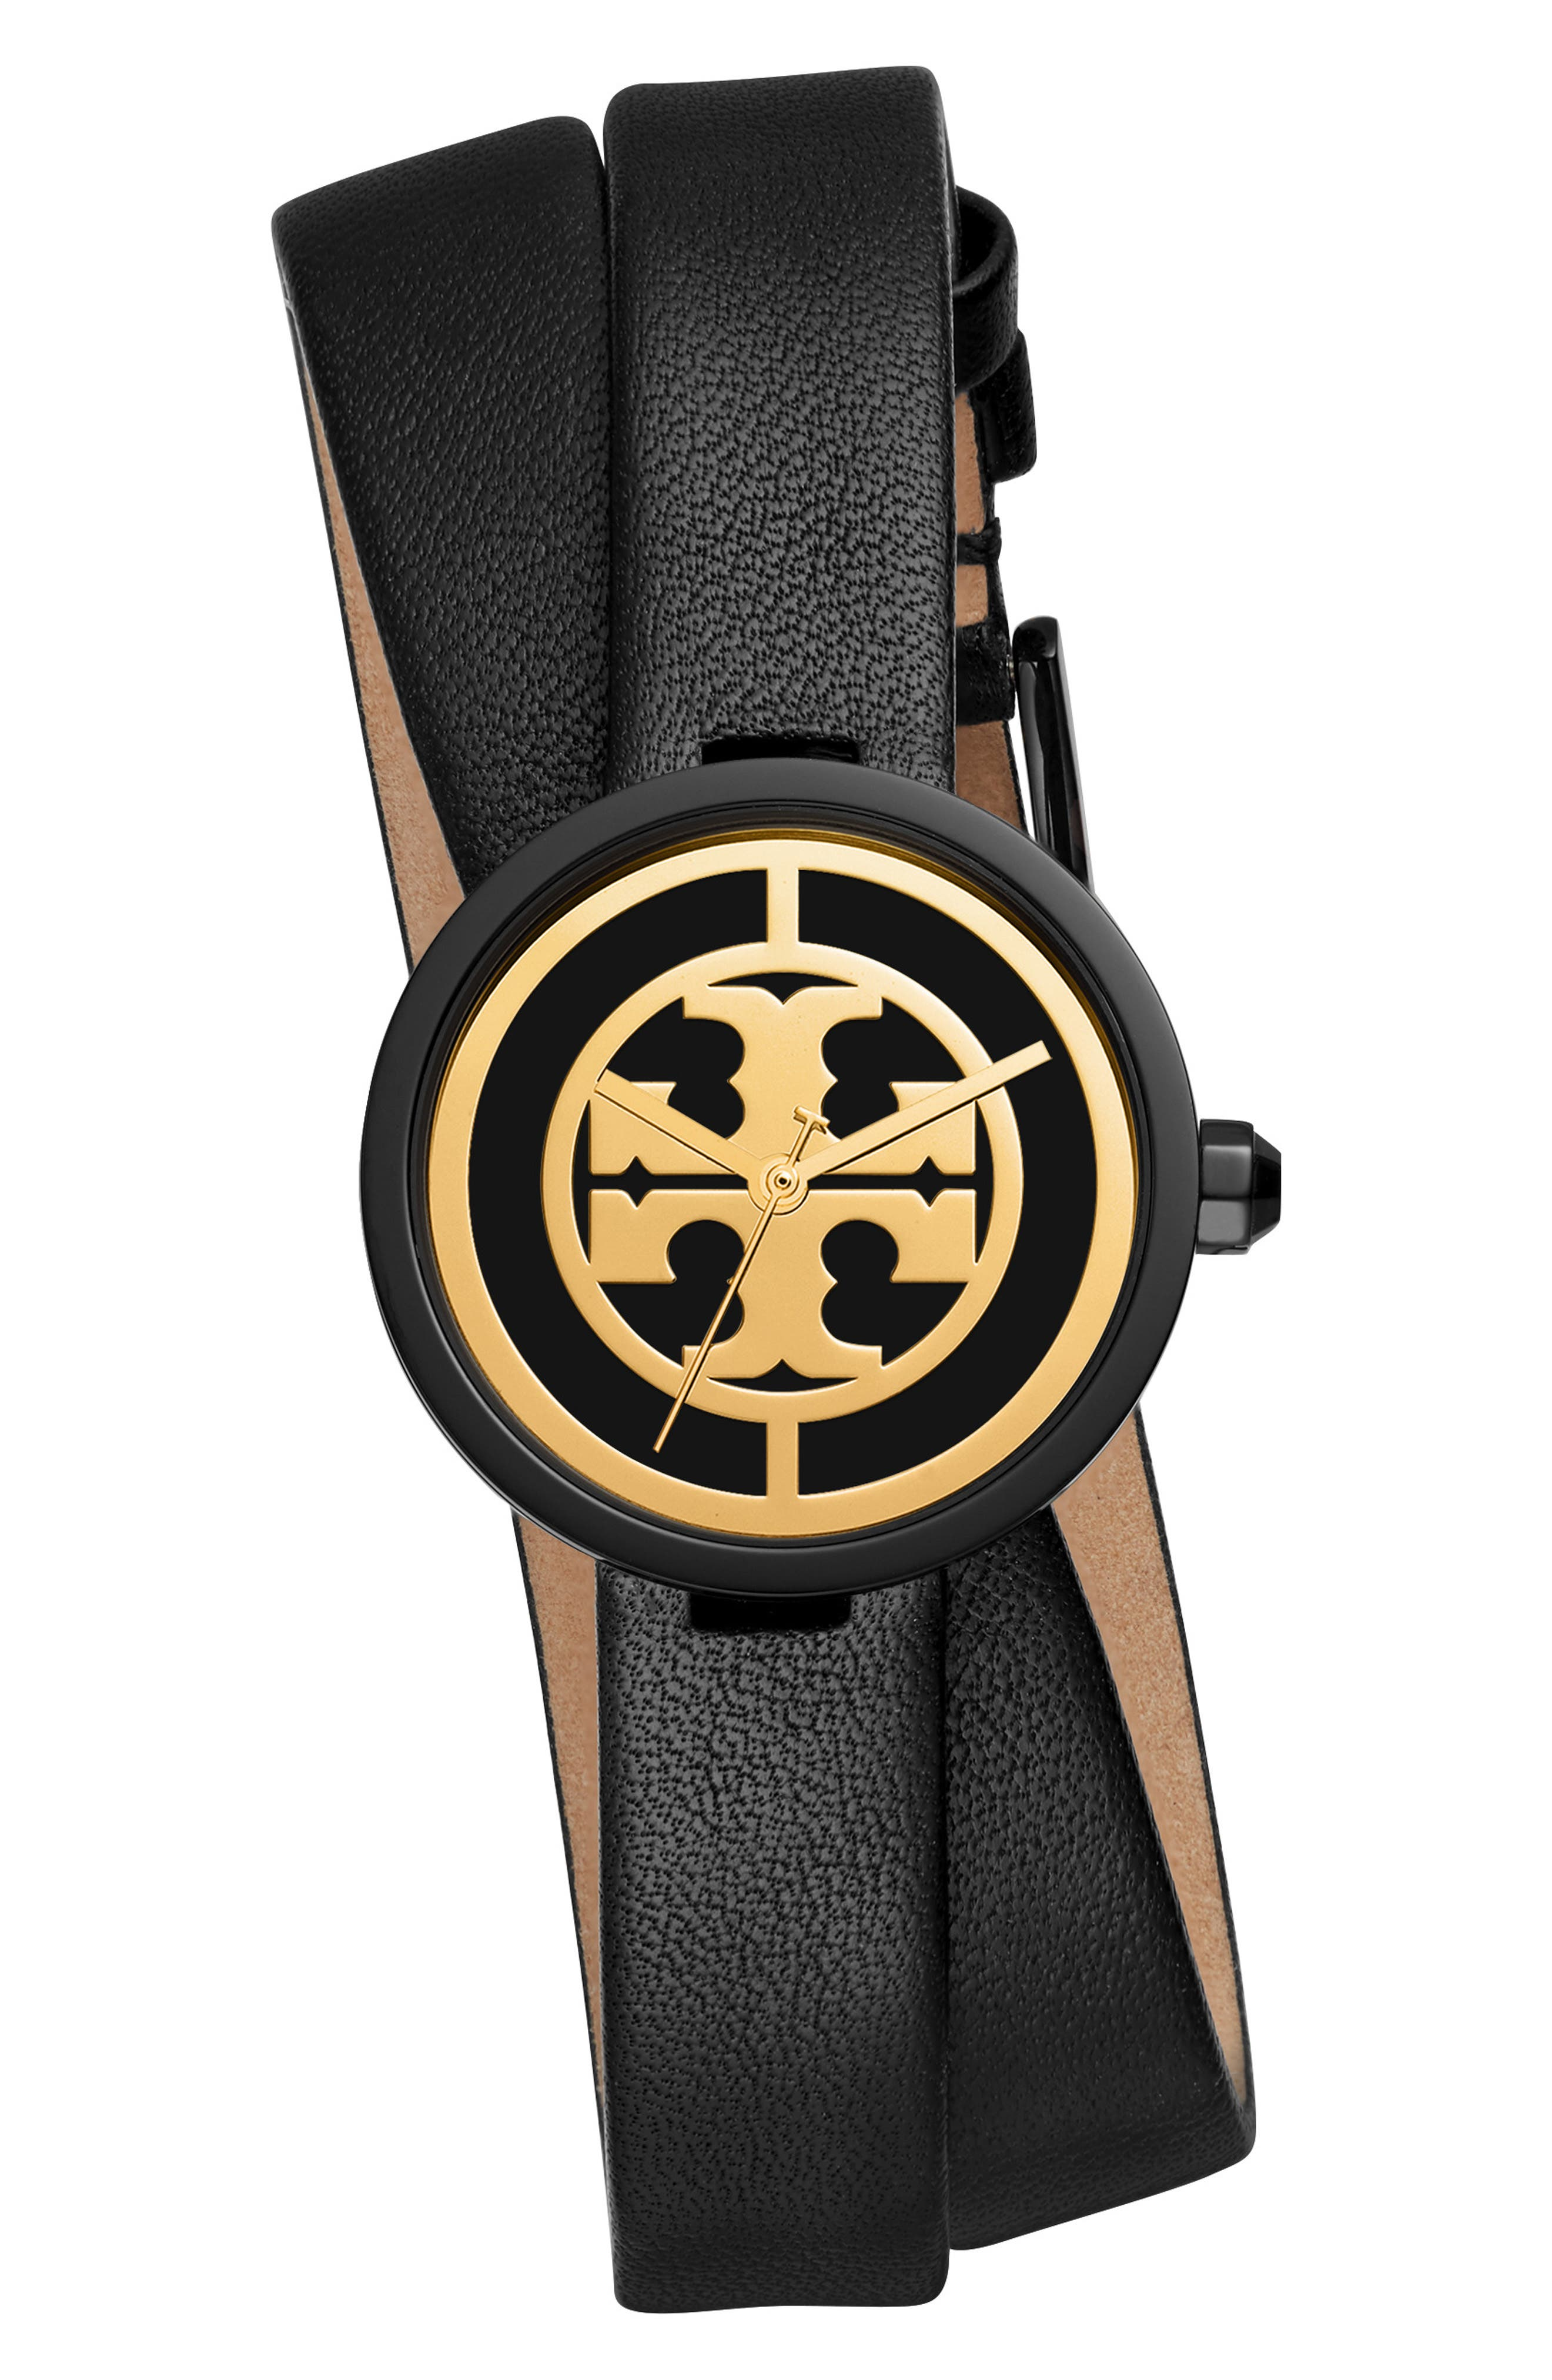 TORY BURCH, Reva Double Wrap Leather Strap Watch, 29mm, Main thumbnail 1, color, 001